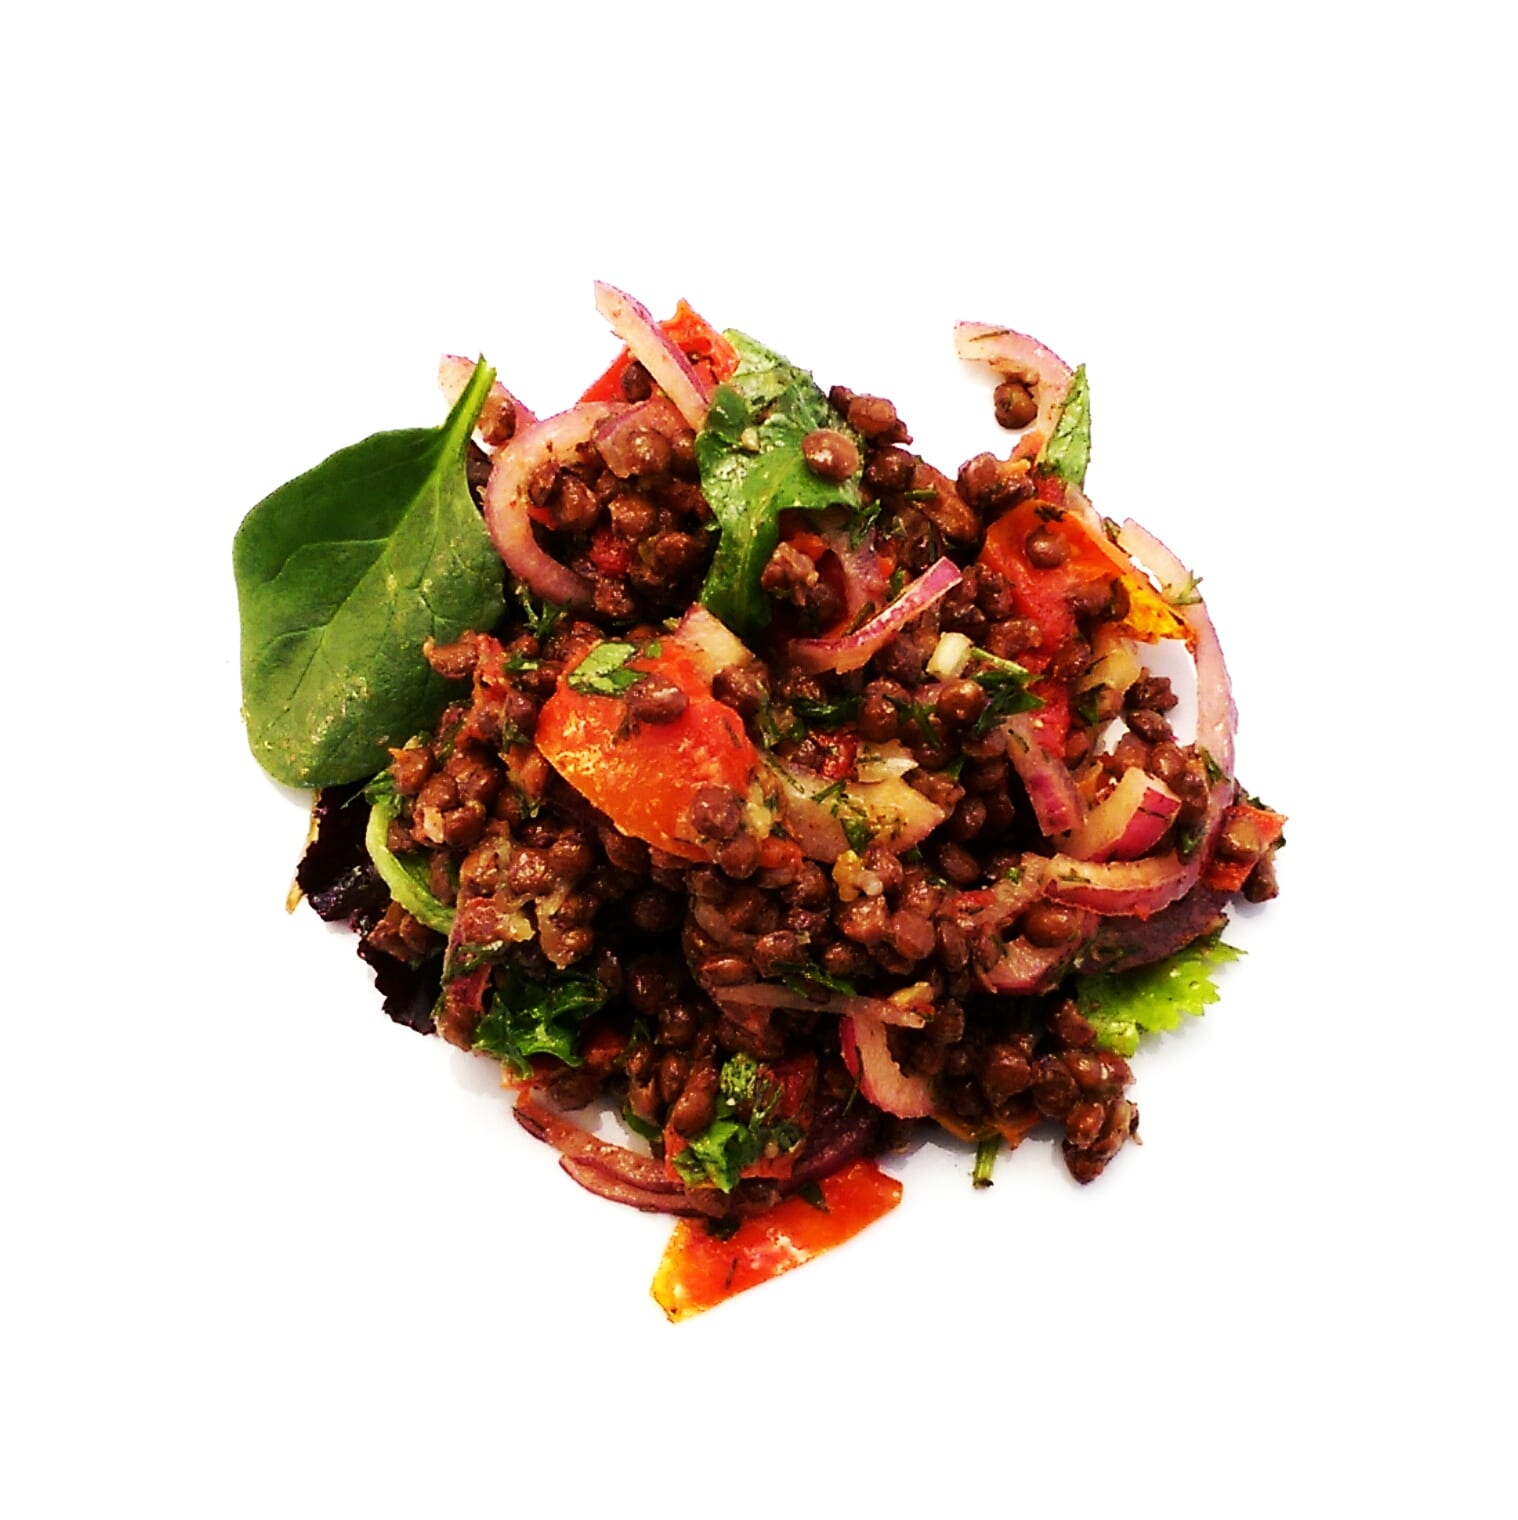 Lush Lentils and Sundried Tomato Salad